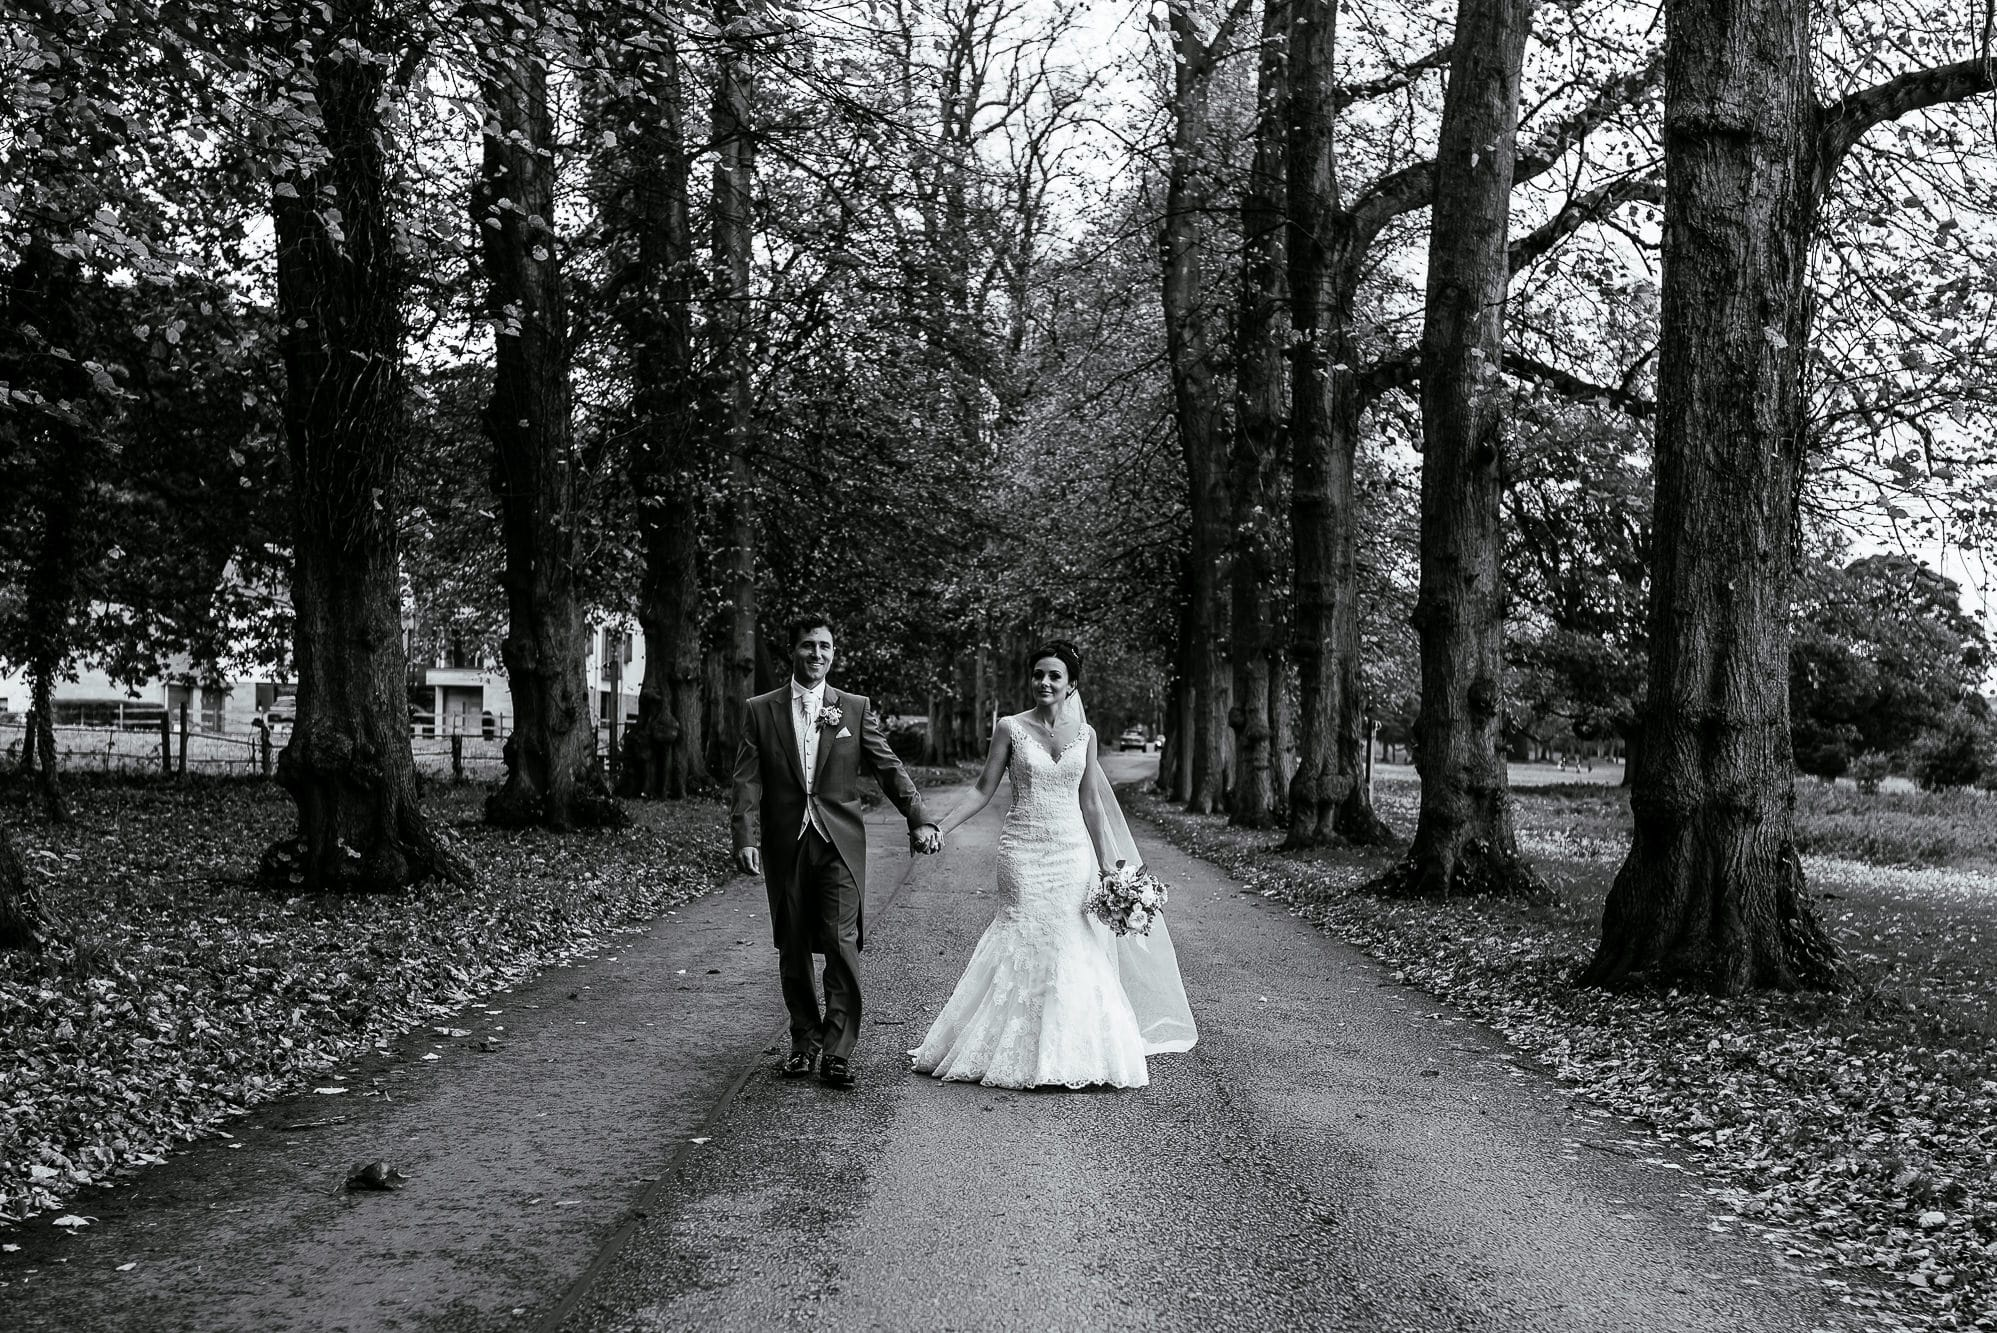 Natural photos of the bride and groom at Mottram Hall